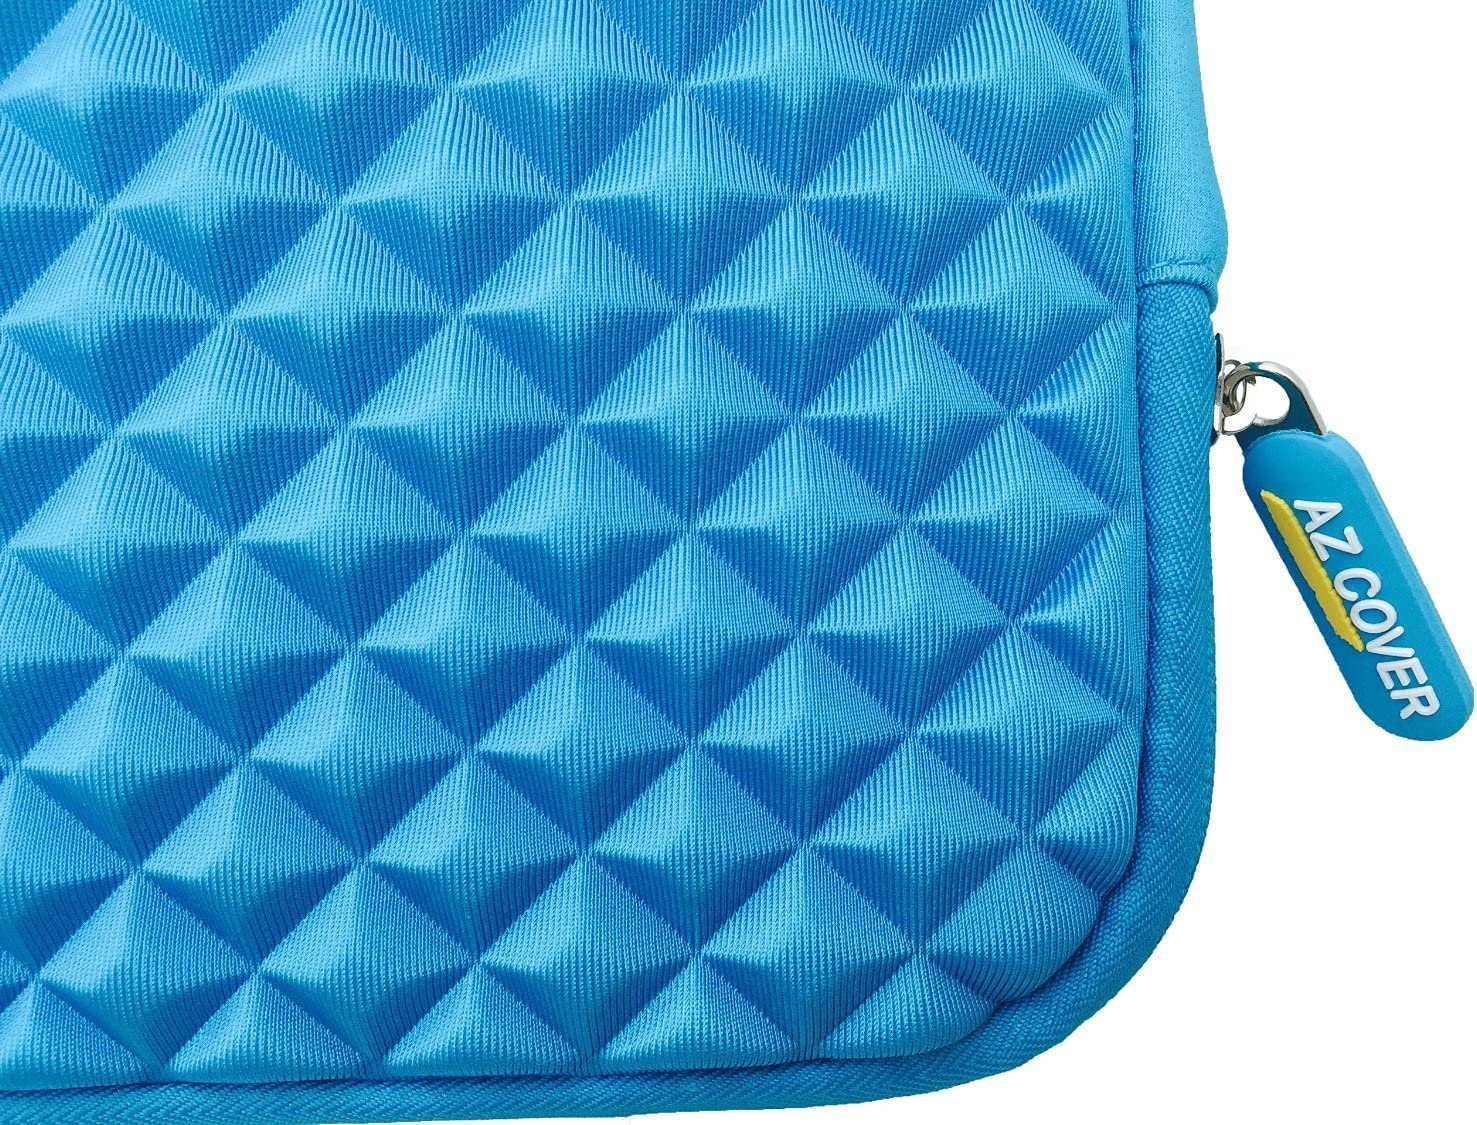 Blue For HP Pavilion x360 2-in-1 11.6 Inch Touch-Screen Notebook PC Laptop AZ-Cover 11-Inch Bag Simplicity /& Stylish Diamond Foam Shock-Resistant Neoprene Sleeve